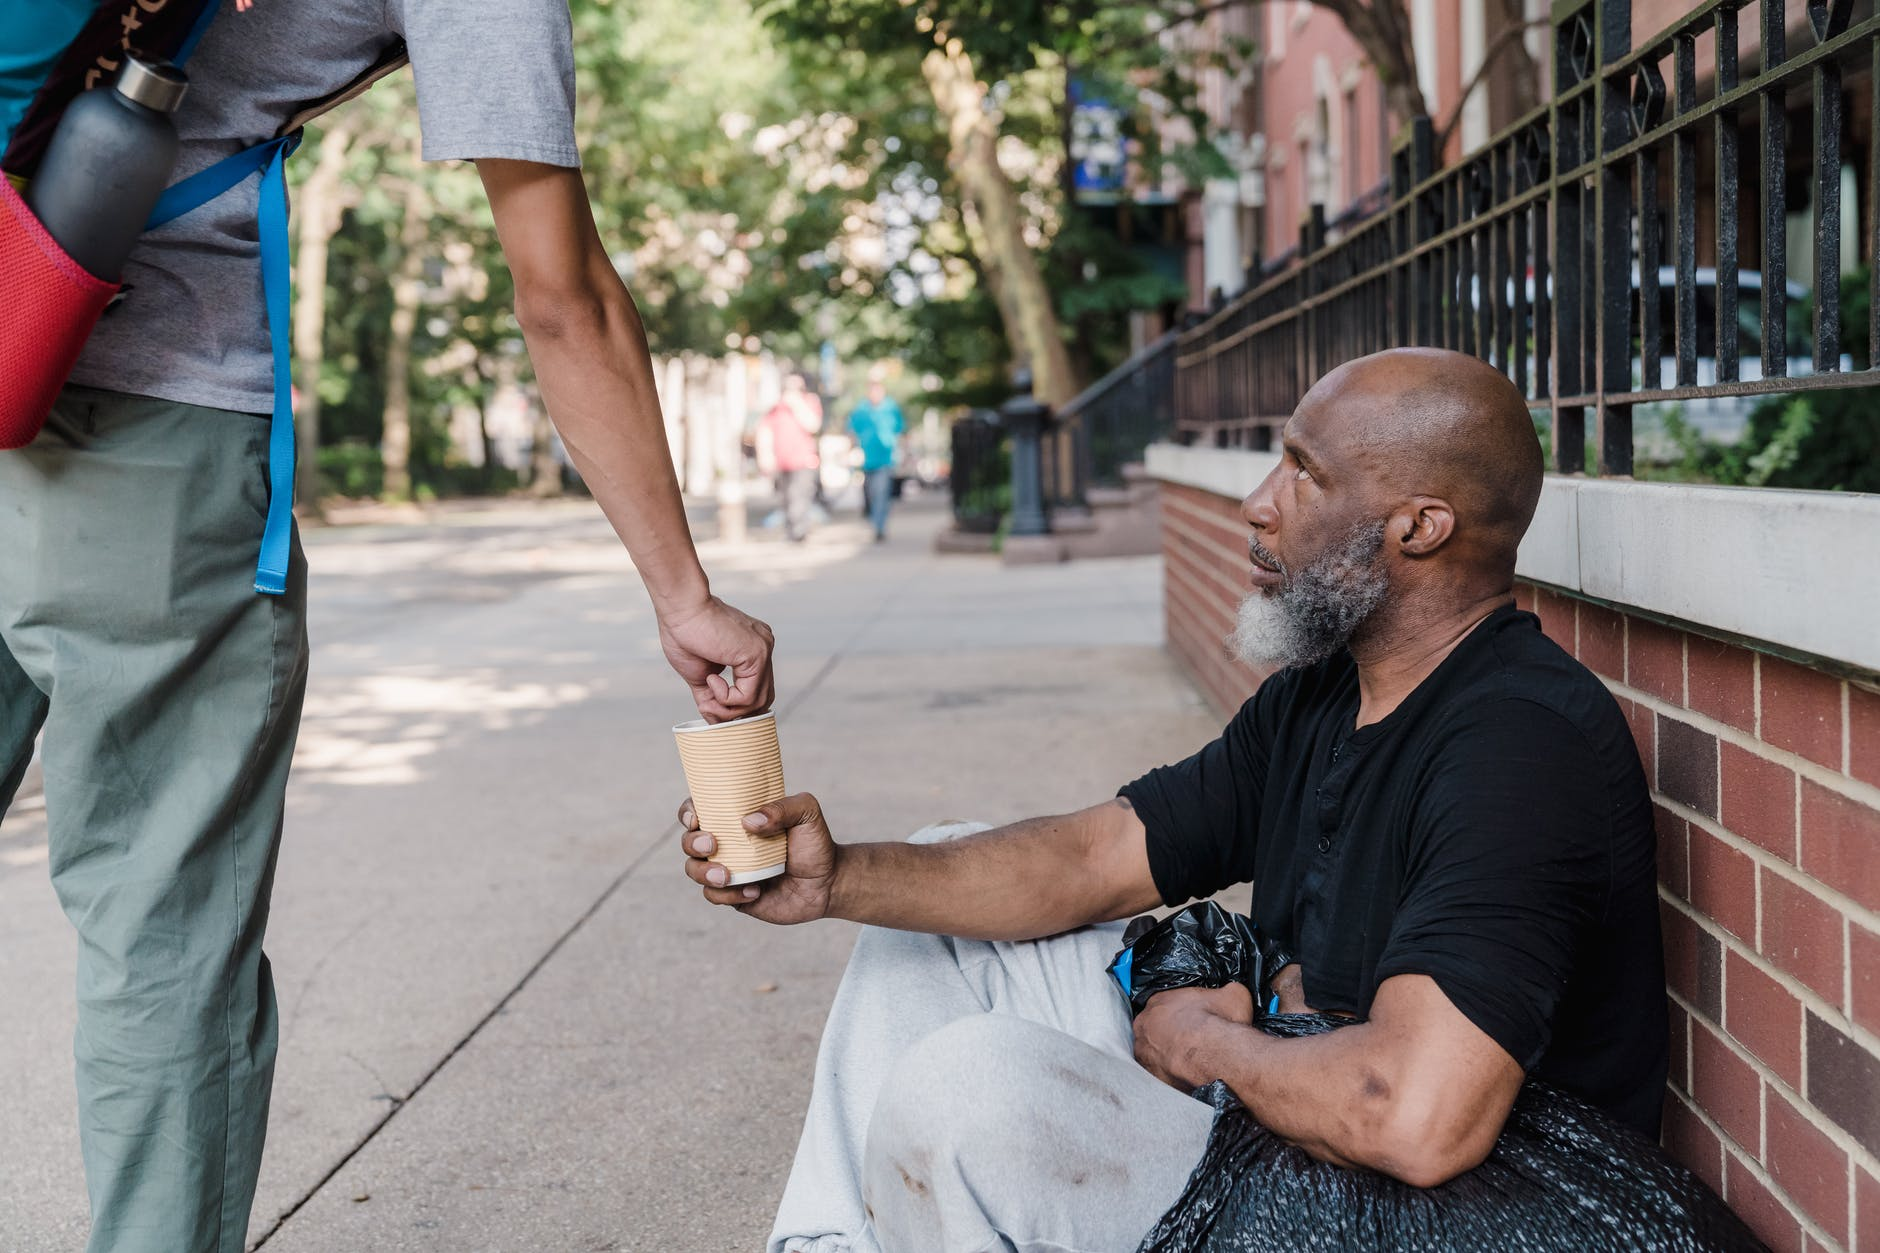 Caring for the homeless.